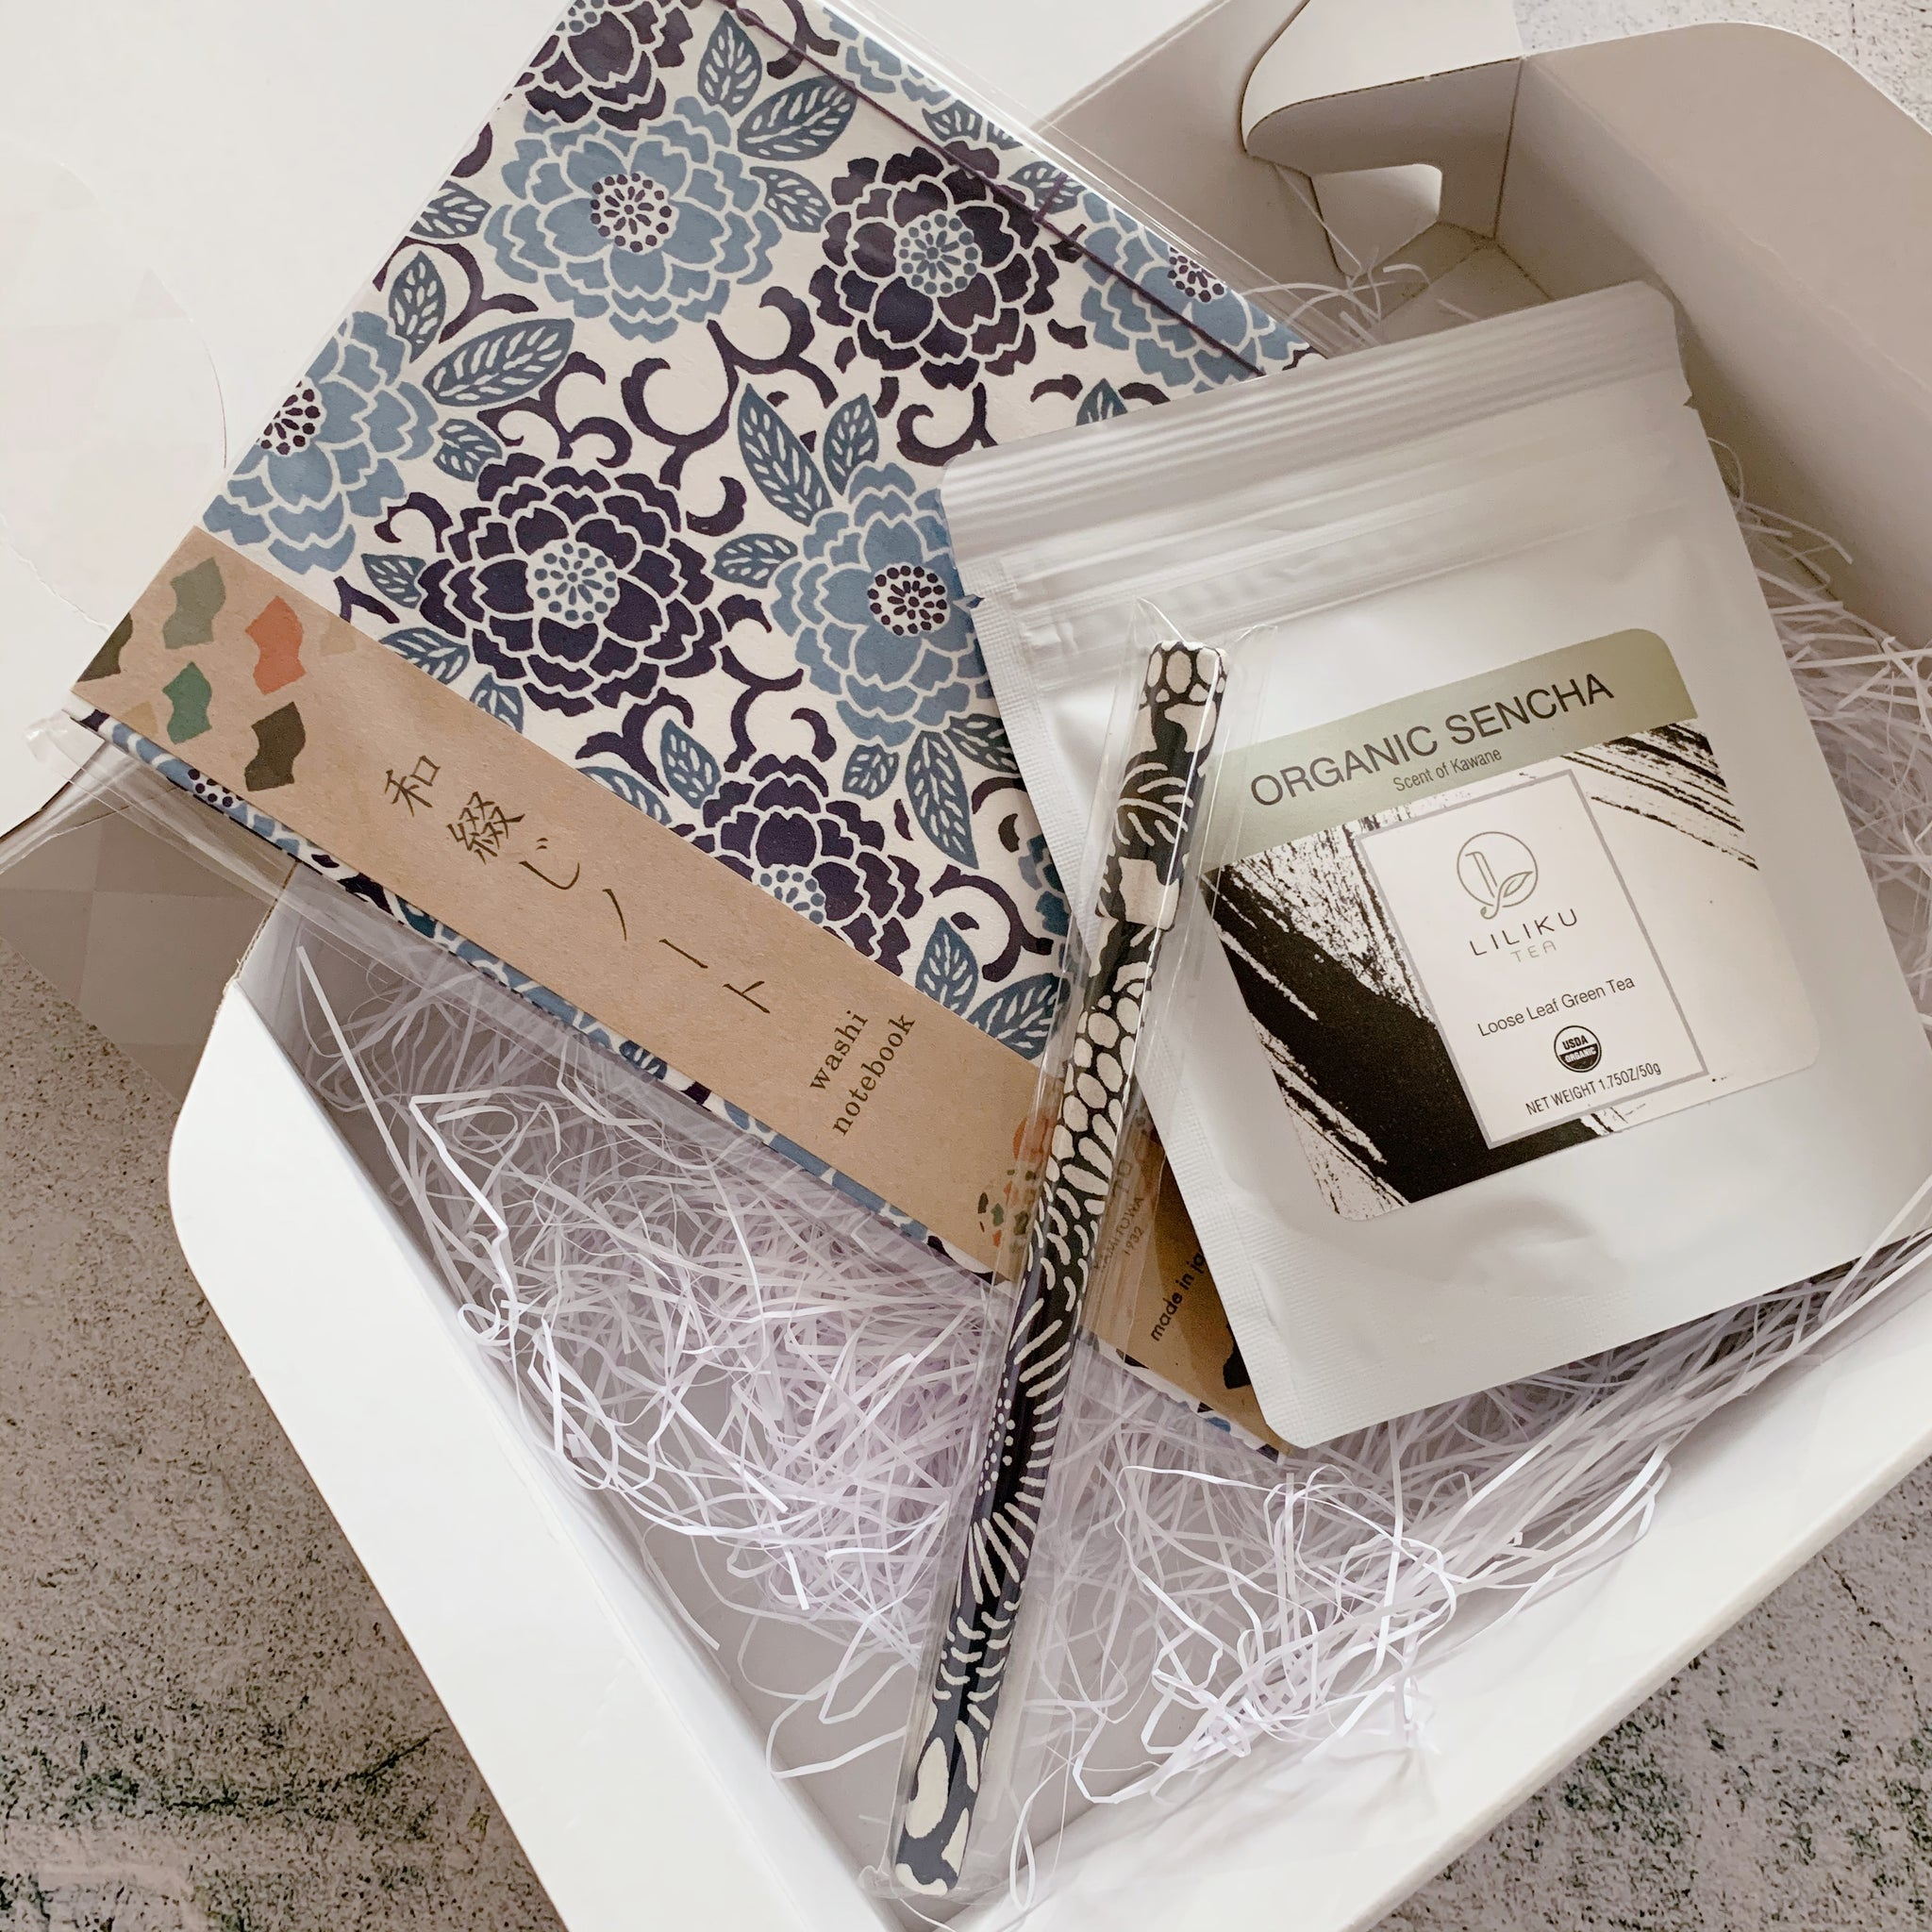 Sencha & Tea Journal Gift Box Set